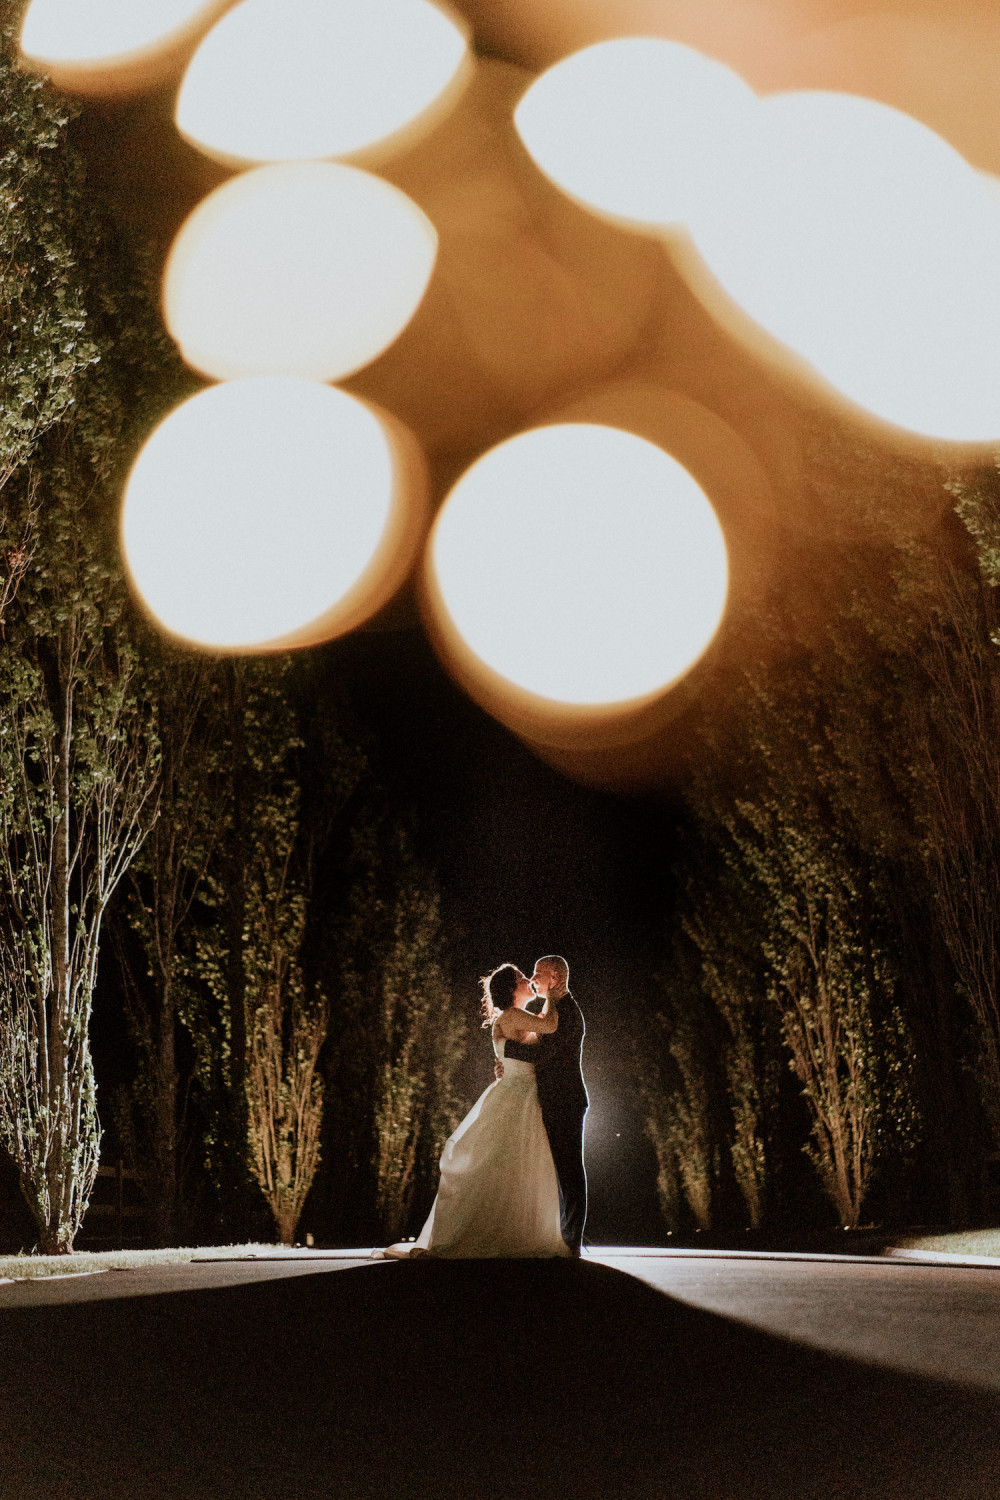 Beautiful romantic evening photograph of bride and groom holding each other about to kiss